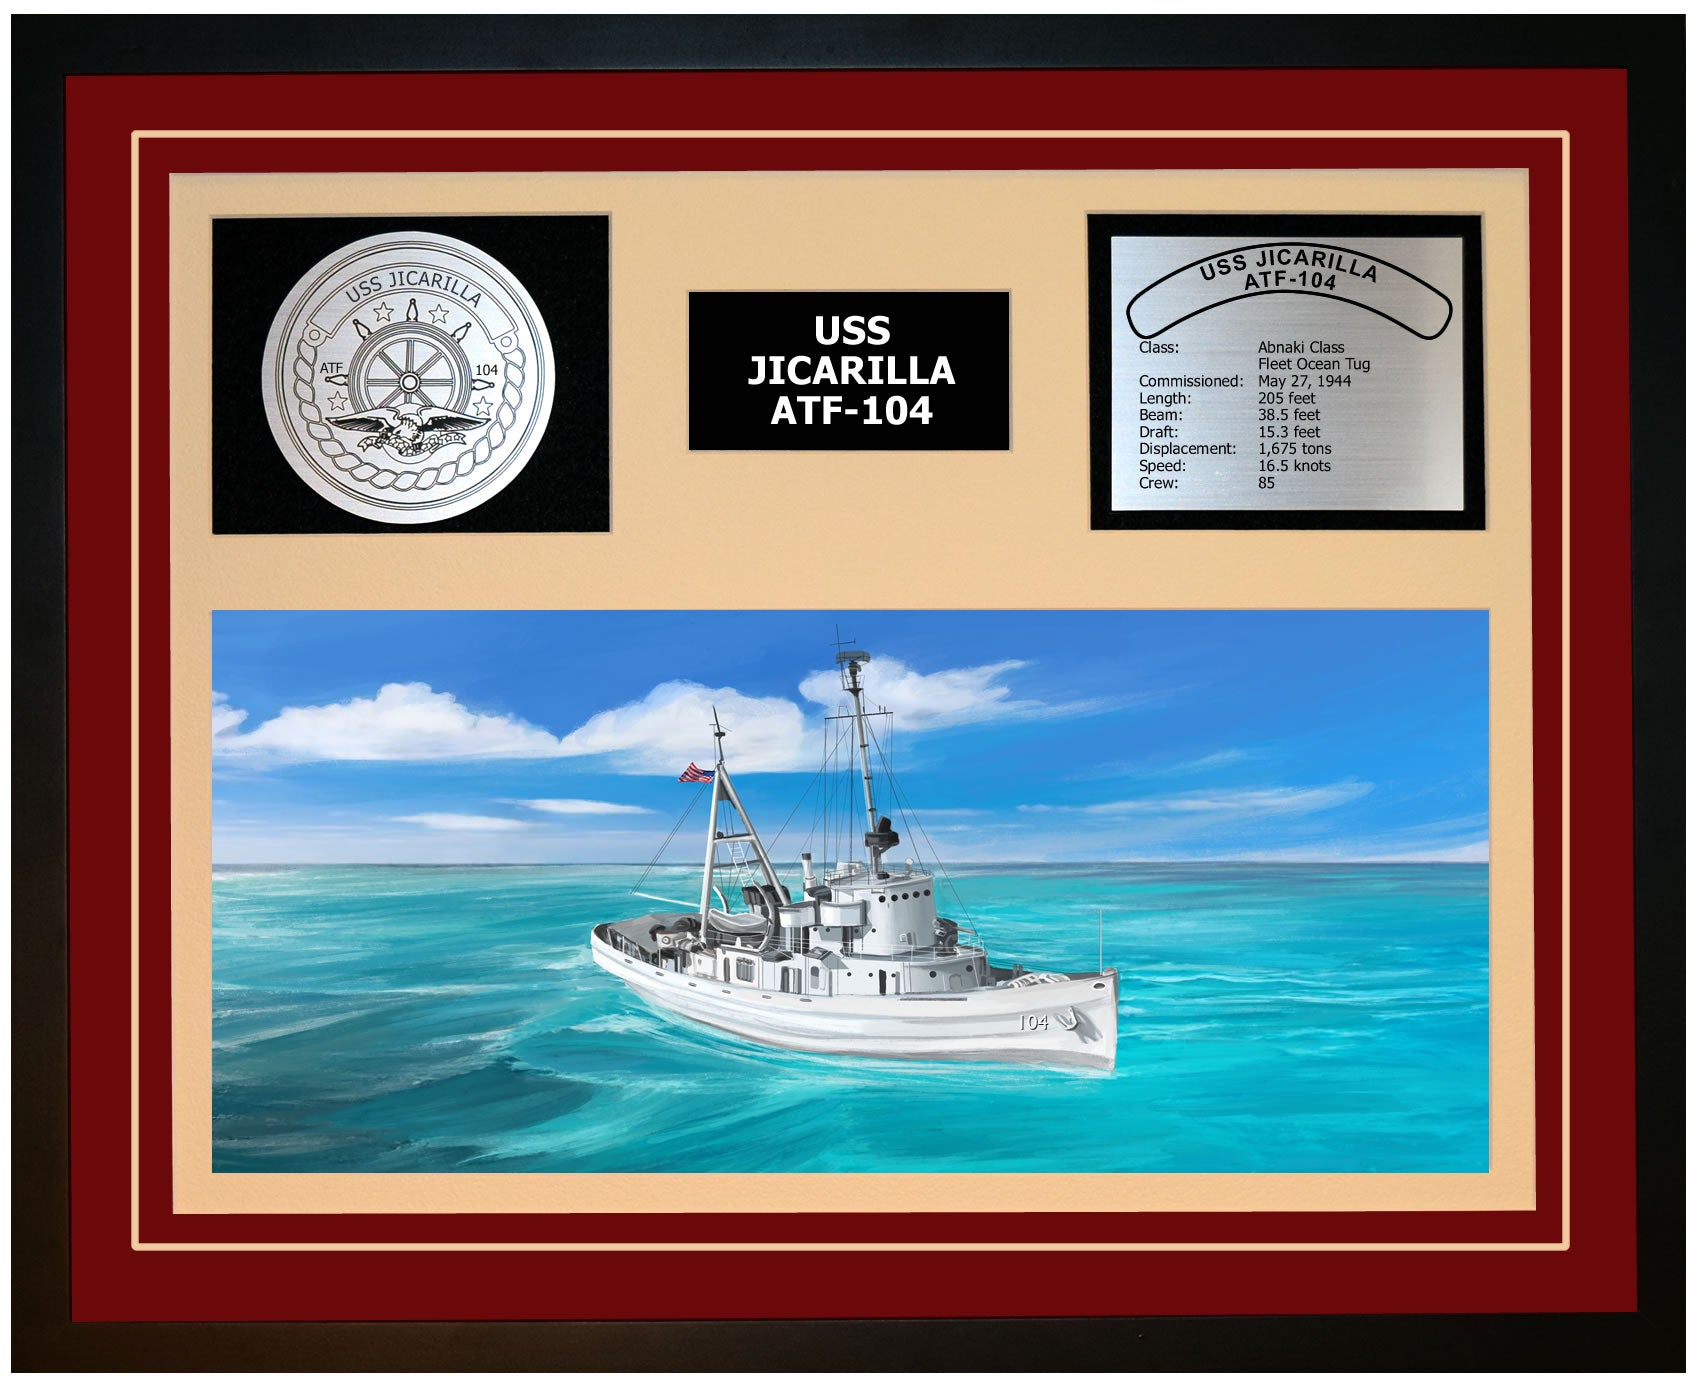 USS JICARILLA ATF-104 Framed Navy Ship Display Burgundy